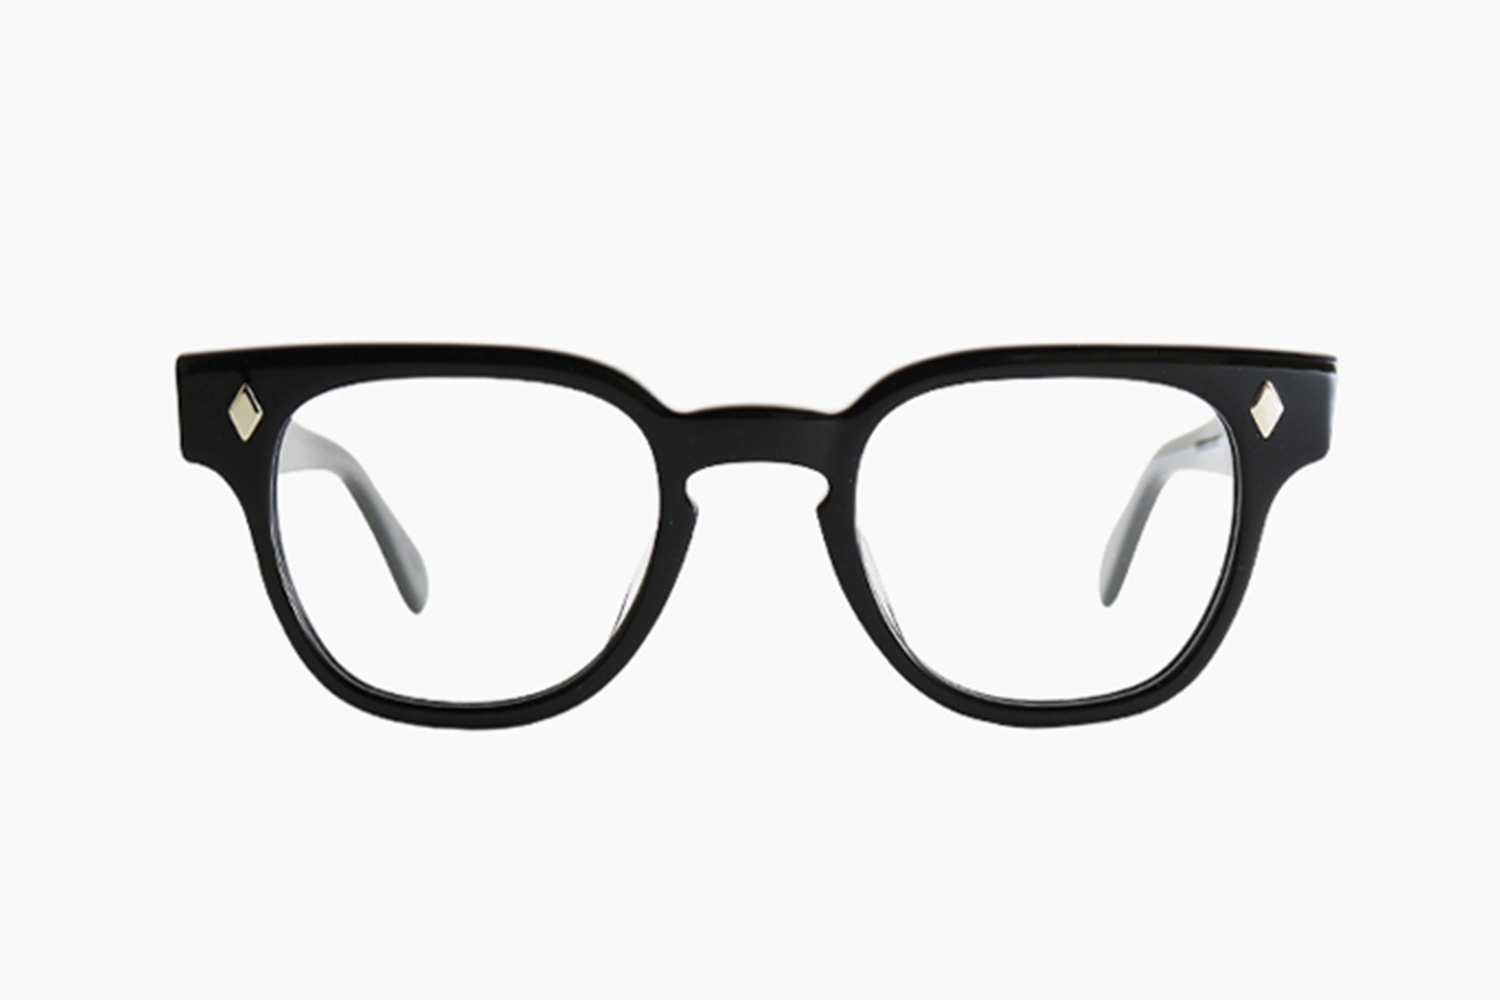 BRYAN 44 – Black|JULIUS TART OPTICAL